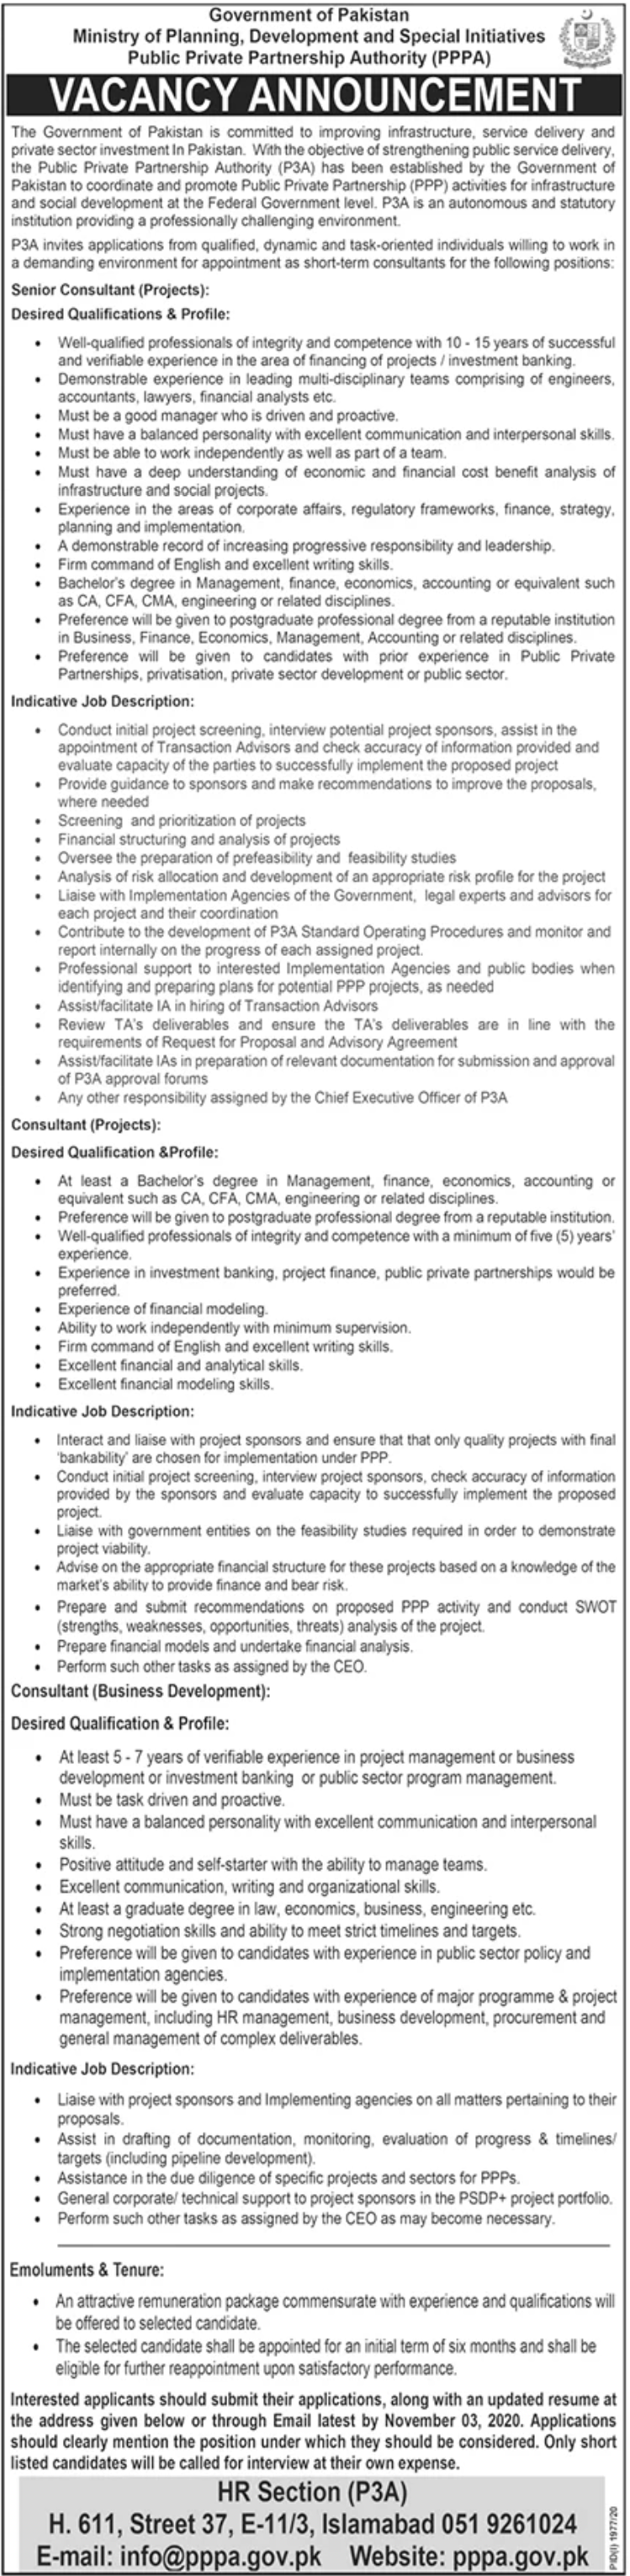 Government of Pakistan Public Private Partnership Authority PPPA Jobs October 2020